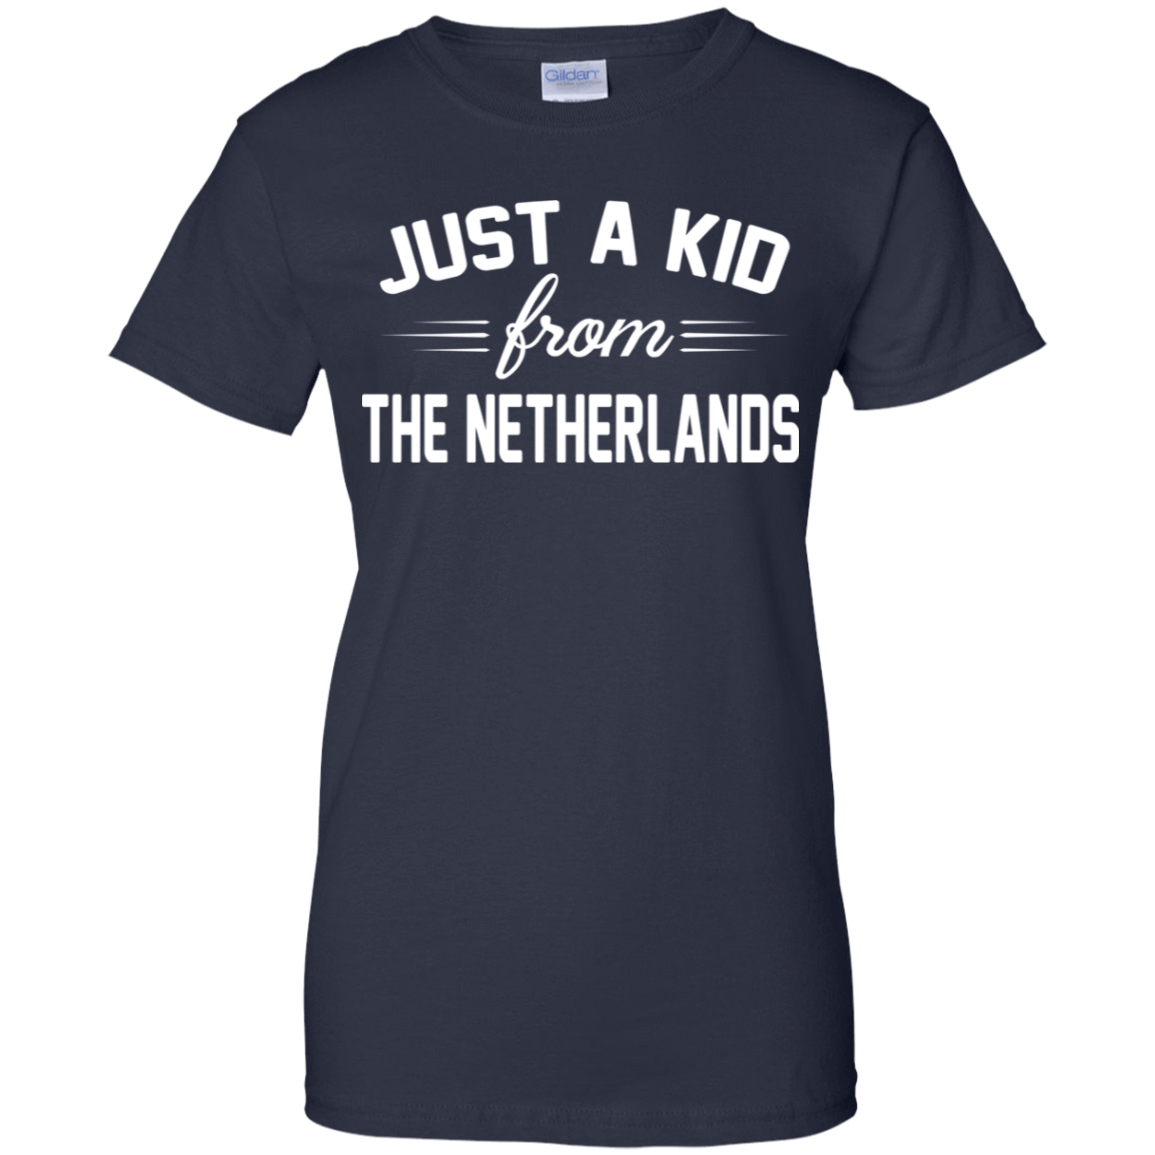 Just a Kid Store | Netherlands T-Shirts, Hoodie, Tank 939-9259-72090842-44765 - Tee Ript